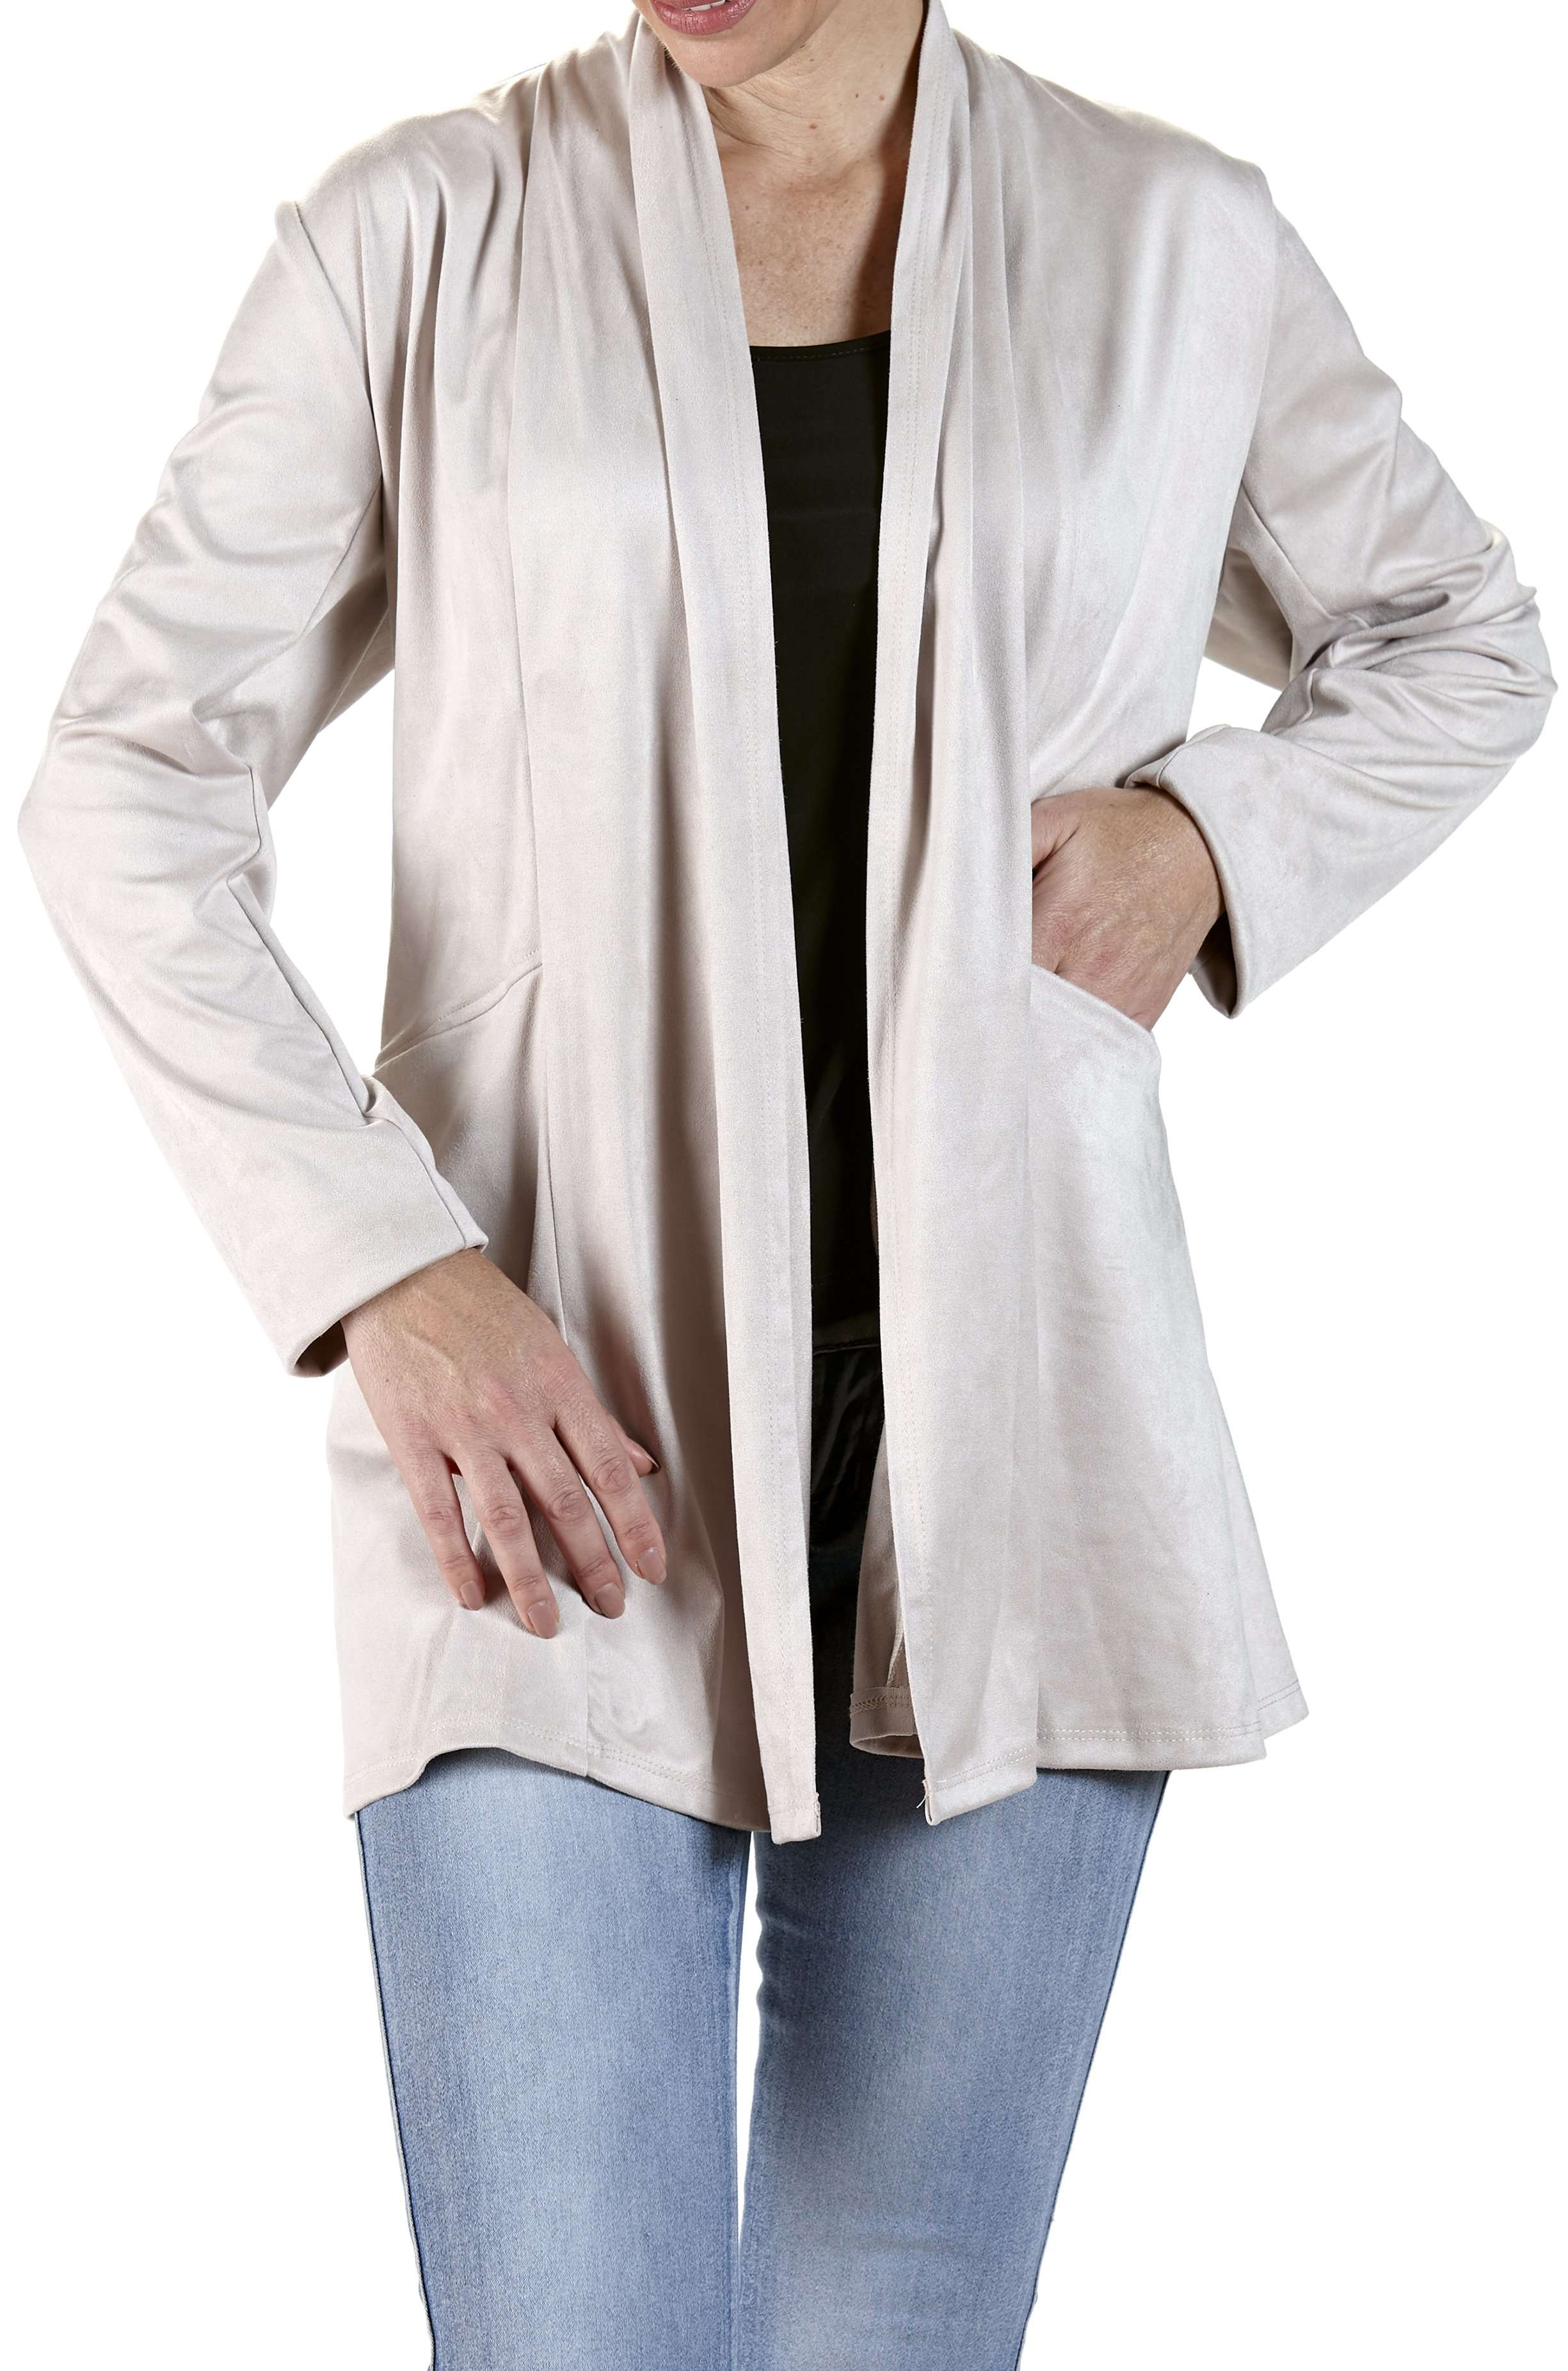 Suede Jacket in Tan Color Washable Super Comfort with Nice Deep Pockets - Yvonne Marie